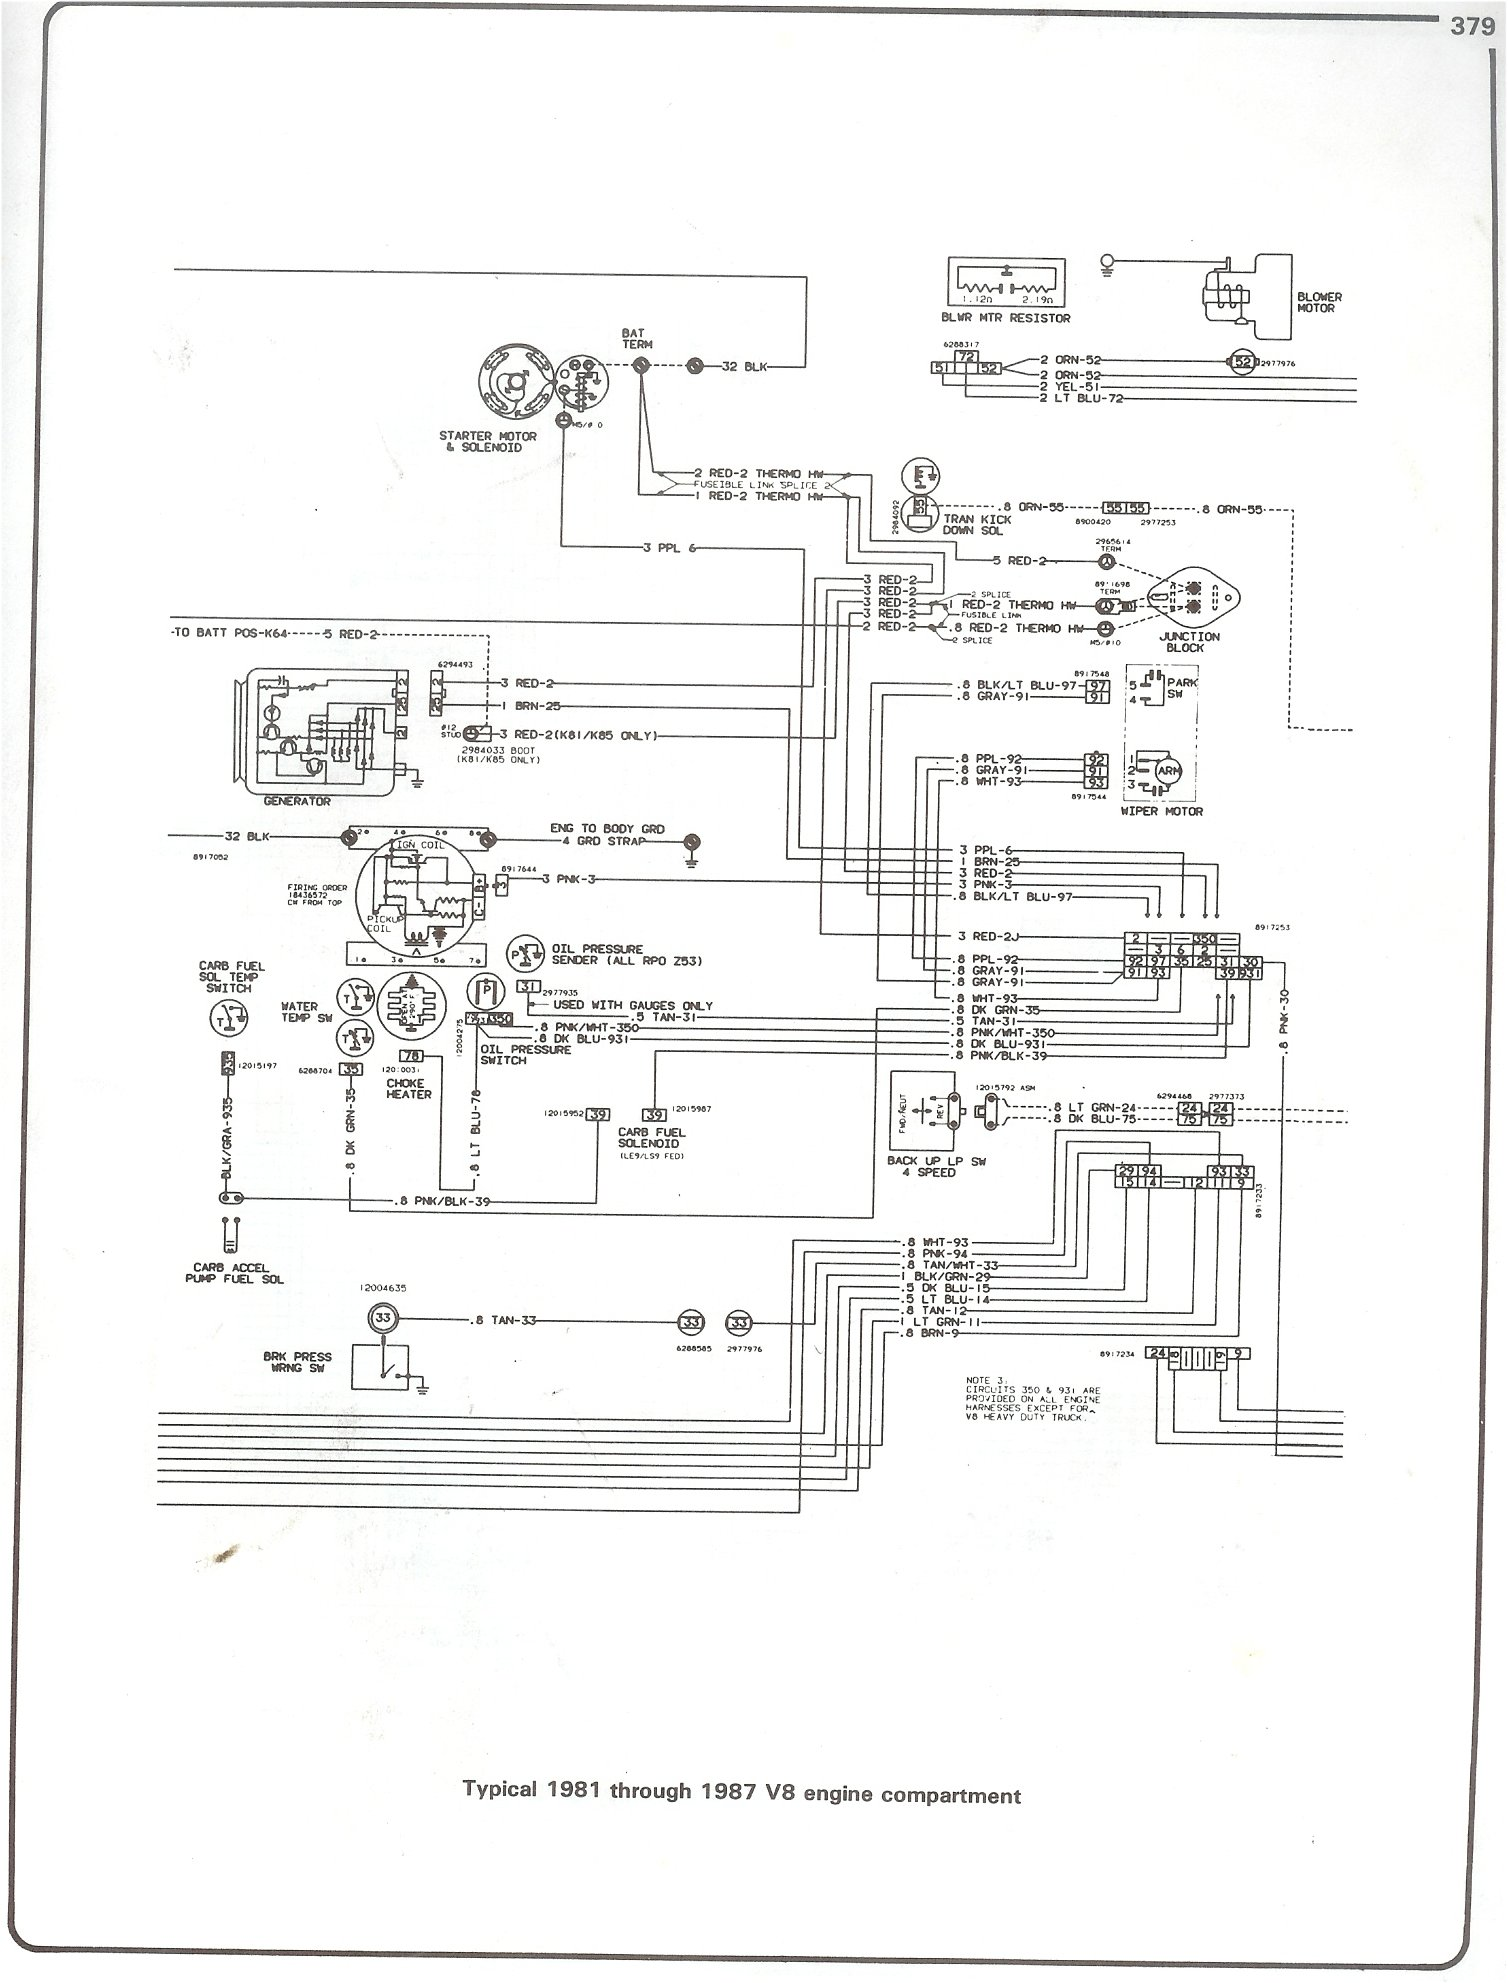 1979 Chevy C10 Wiring Diagram Another Blog About 2004 Ford Crown Victoria Radio Complete 73 87 Diagrams Rh Forum 87chevytrucks Com Truck Steering Column